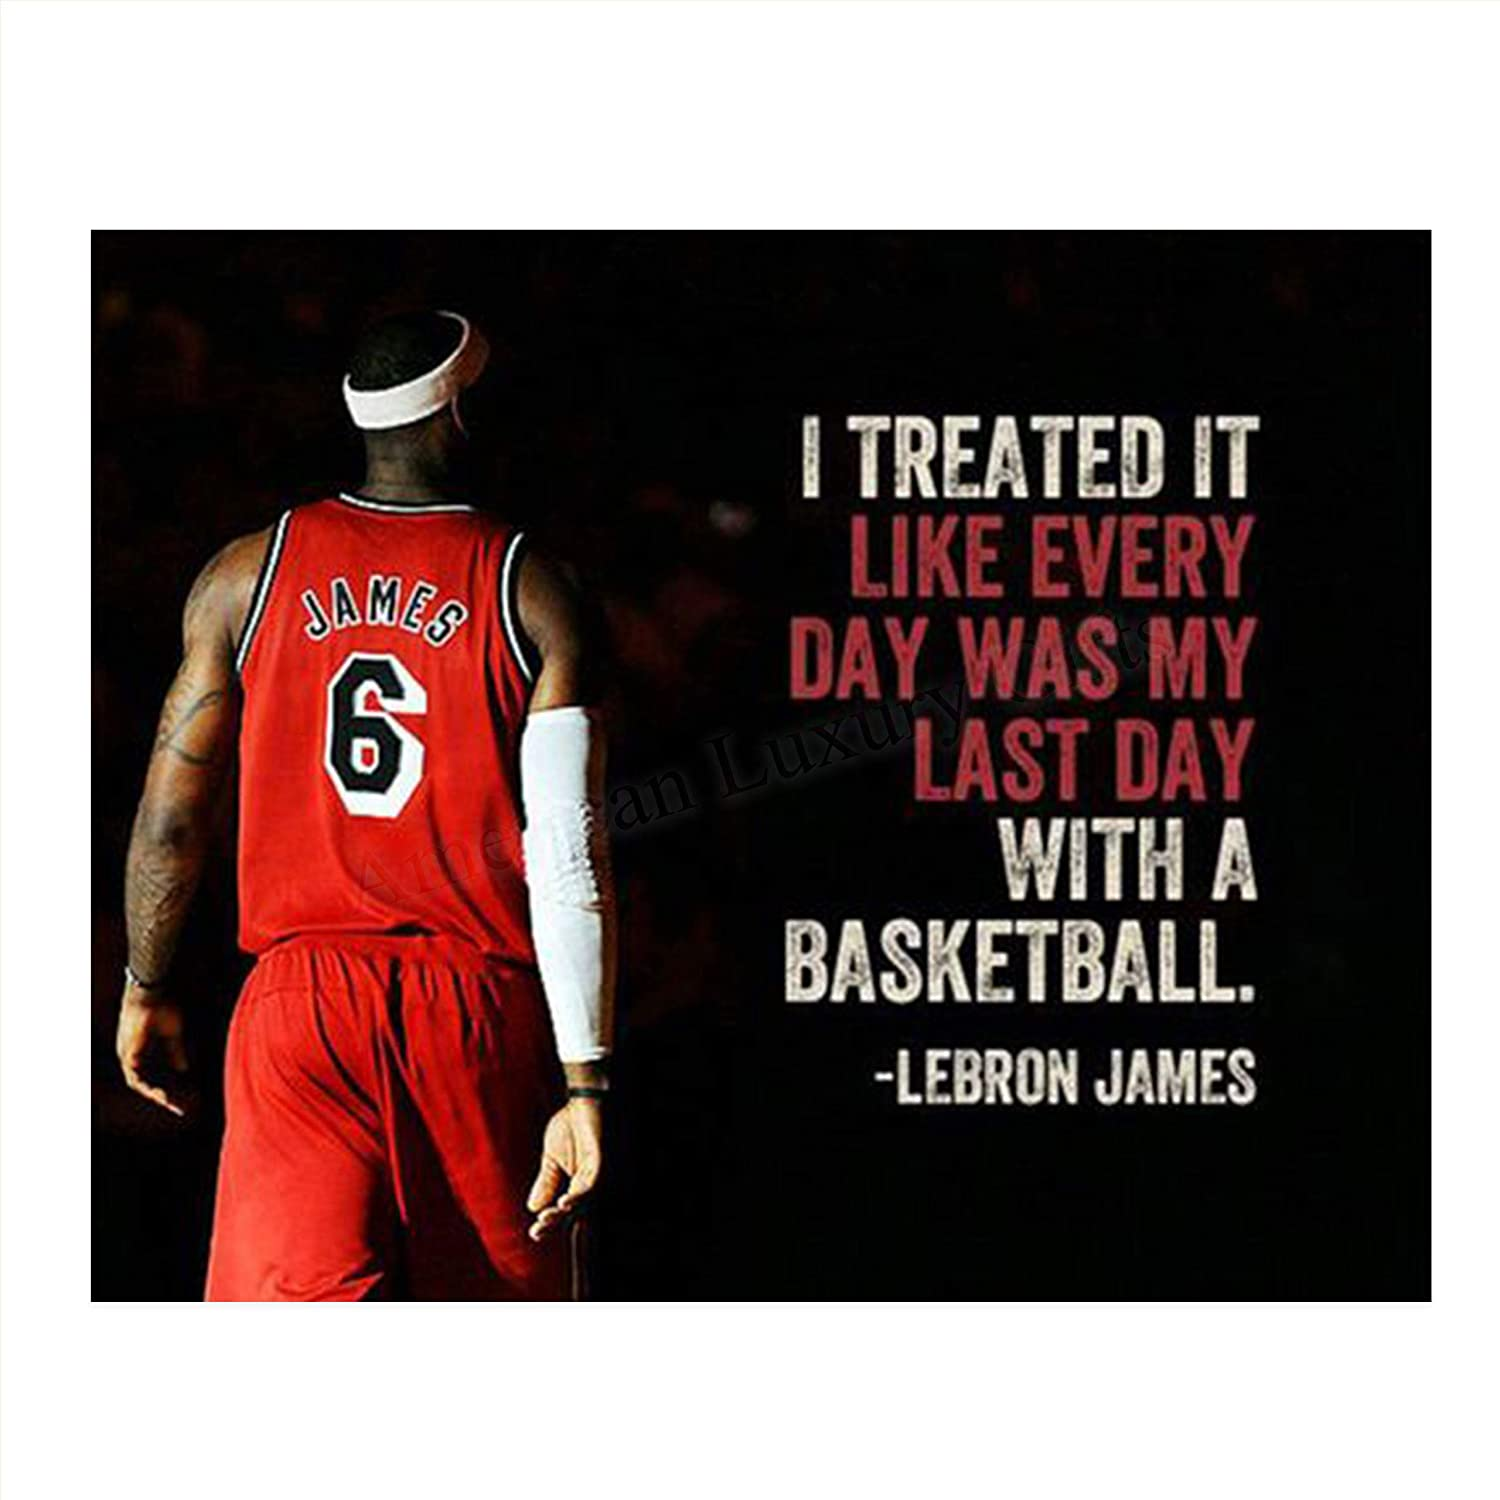 Amazon Com Lebron James Quotes Treat Everyday As The Last Day 10 X 8 Motivational Basketball Poster Print Ready To Frame Nba Inspirational Wall Art Home Office Decor Perfect For Locker Room Gym Dorm Handmade